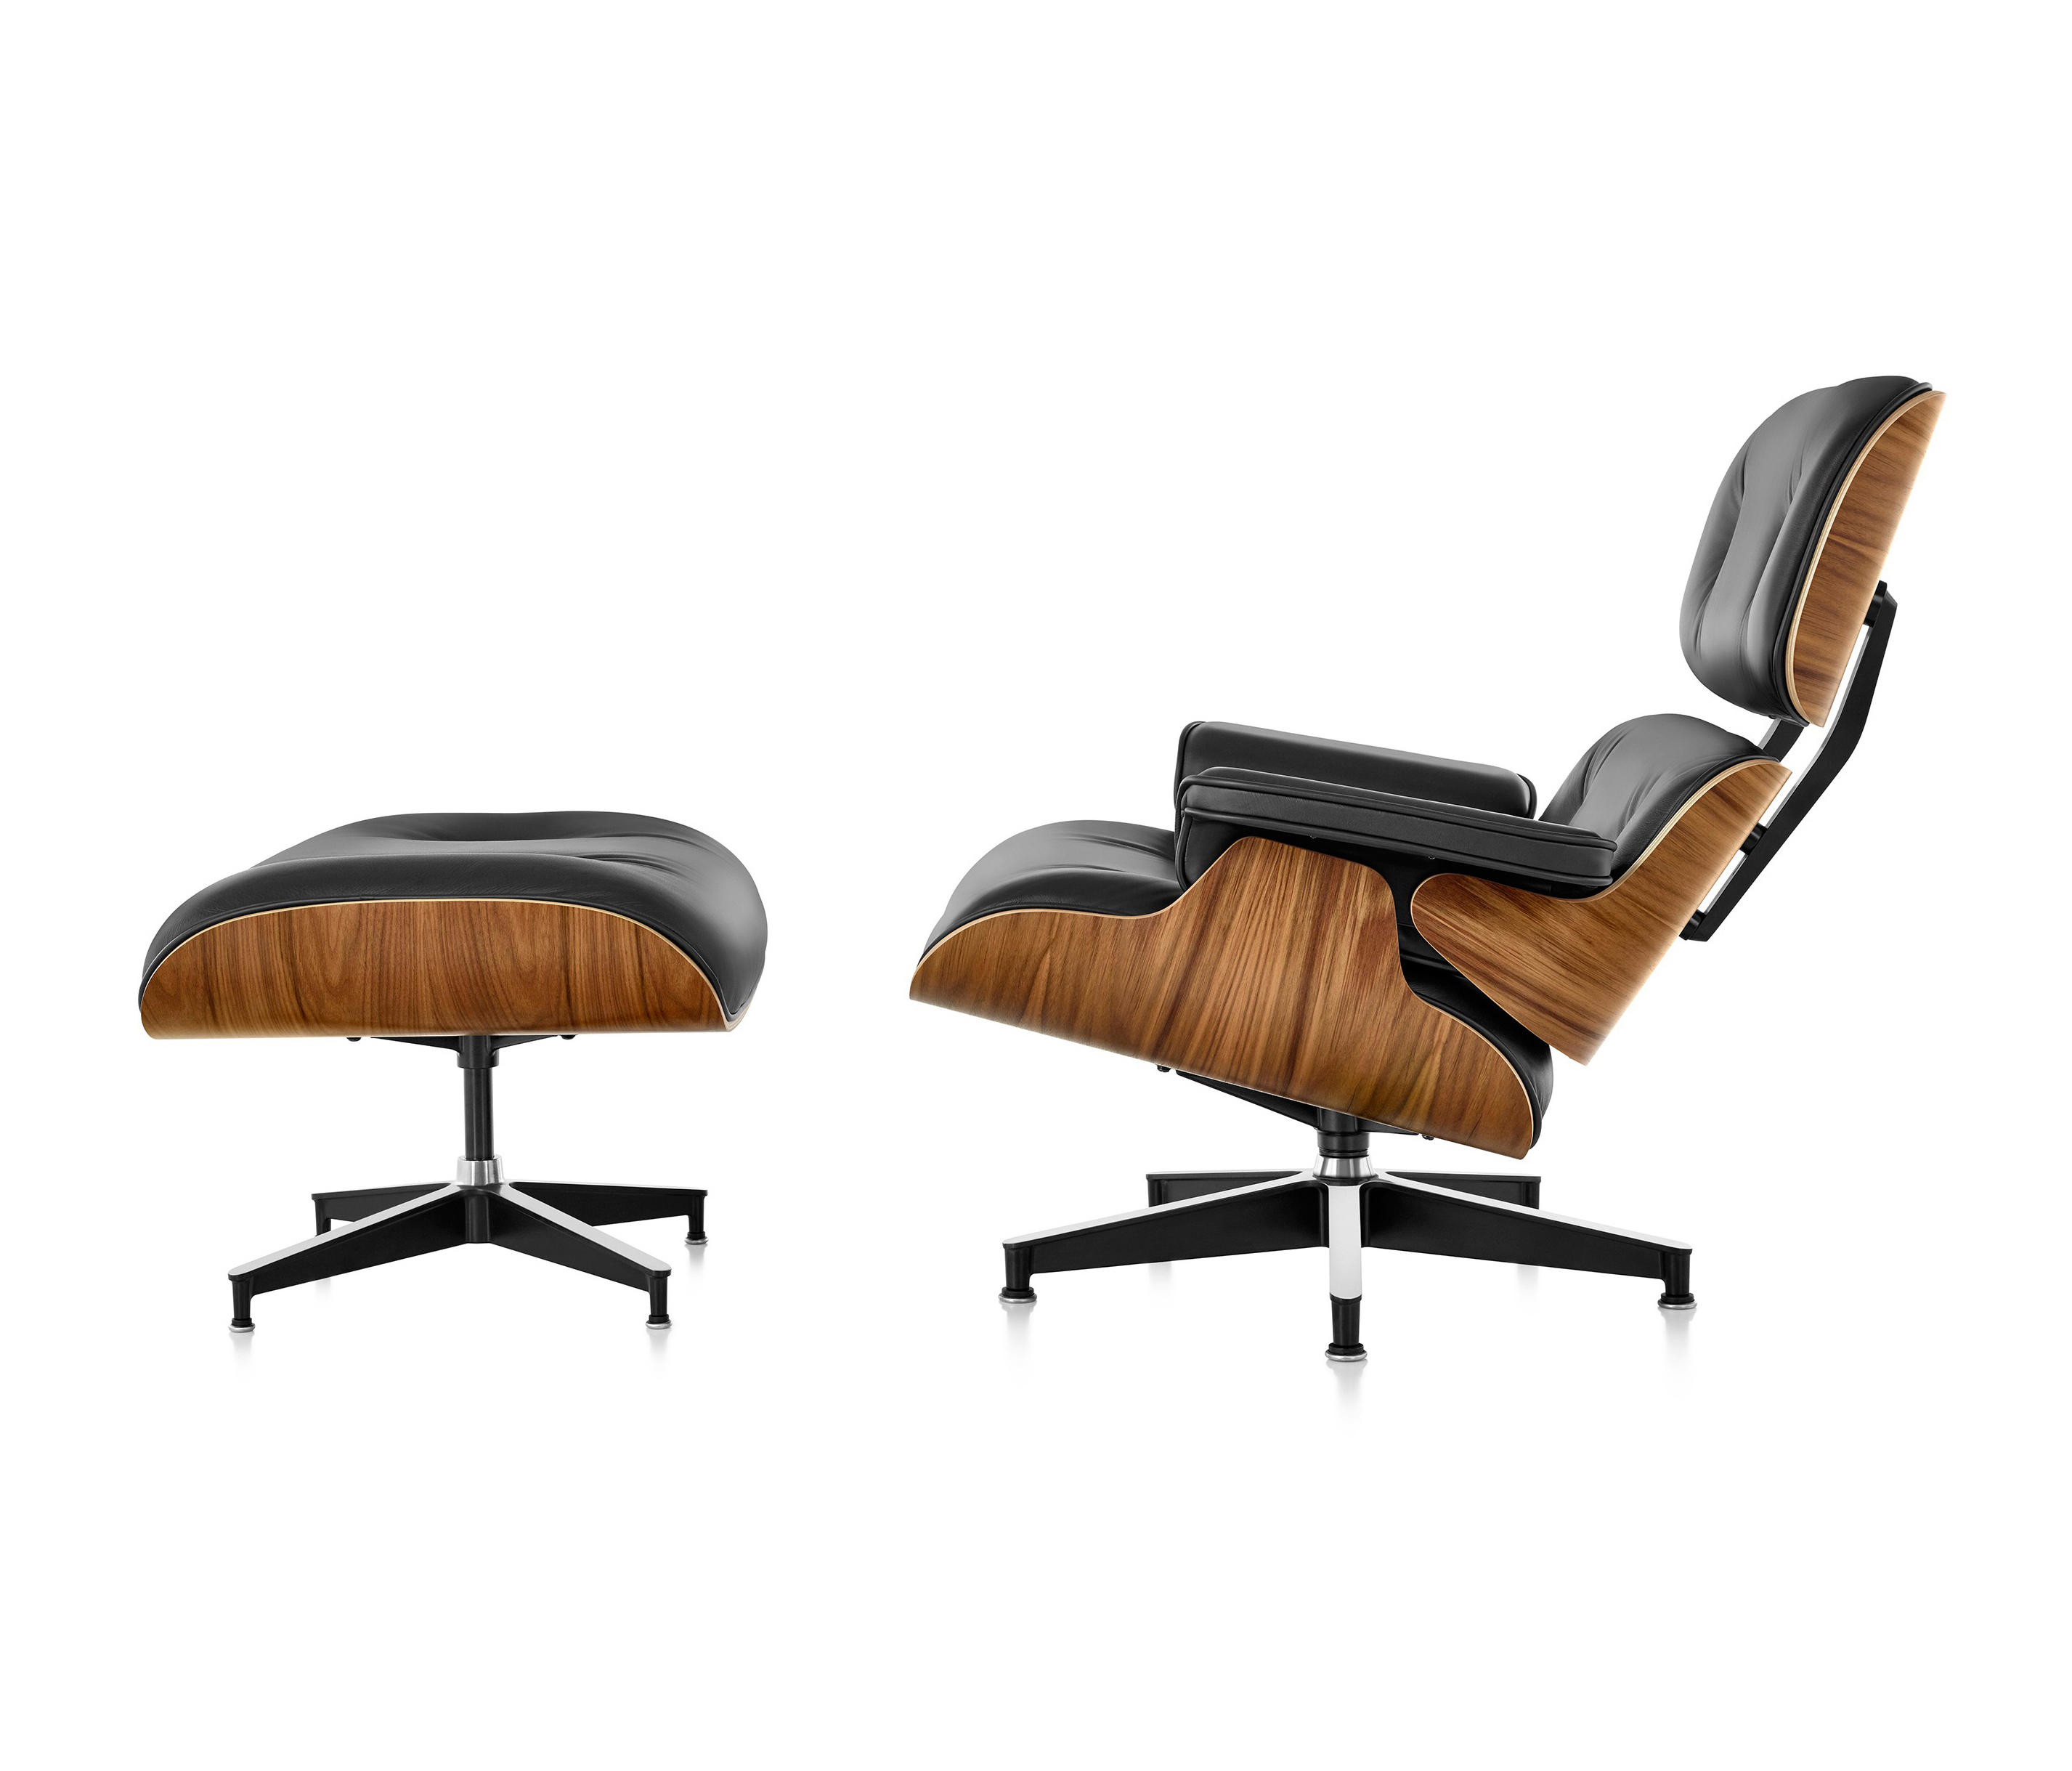 Miller Sessel Eames Lounge Chair And Ottoman Sessel Von Herman Miller Architonic